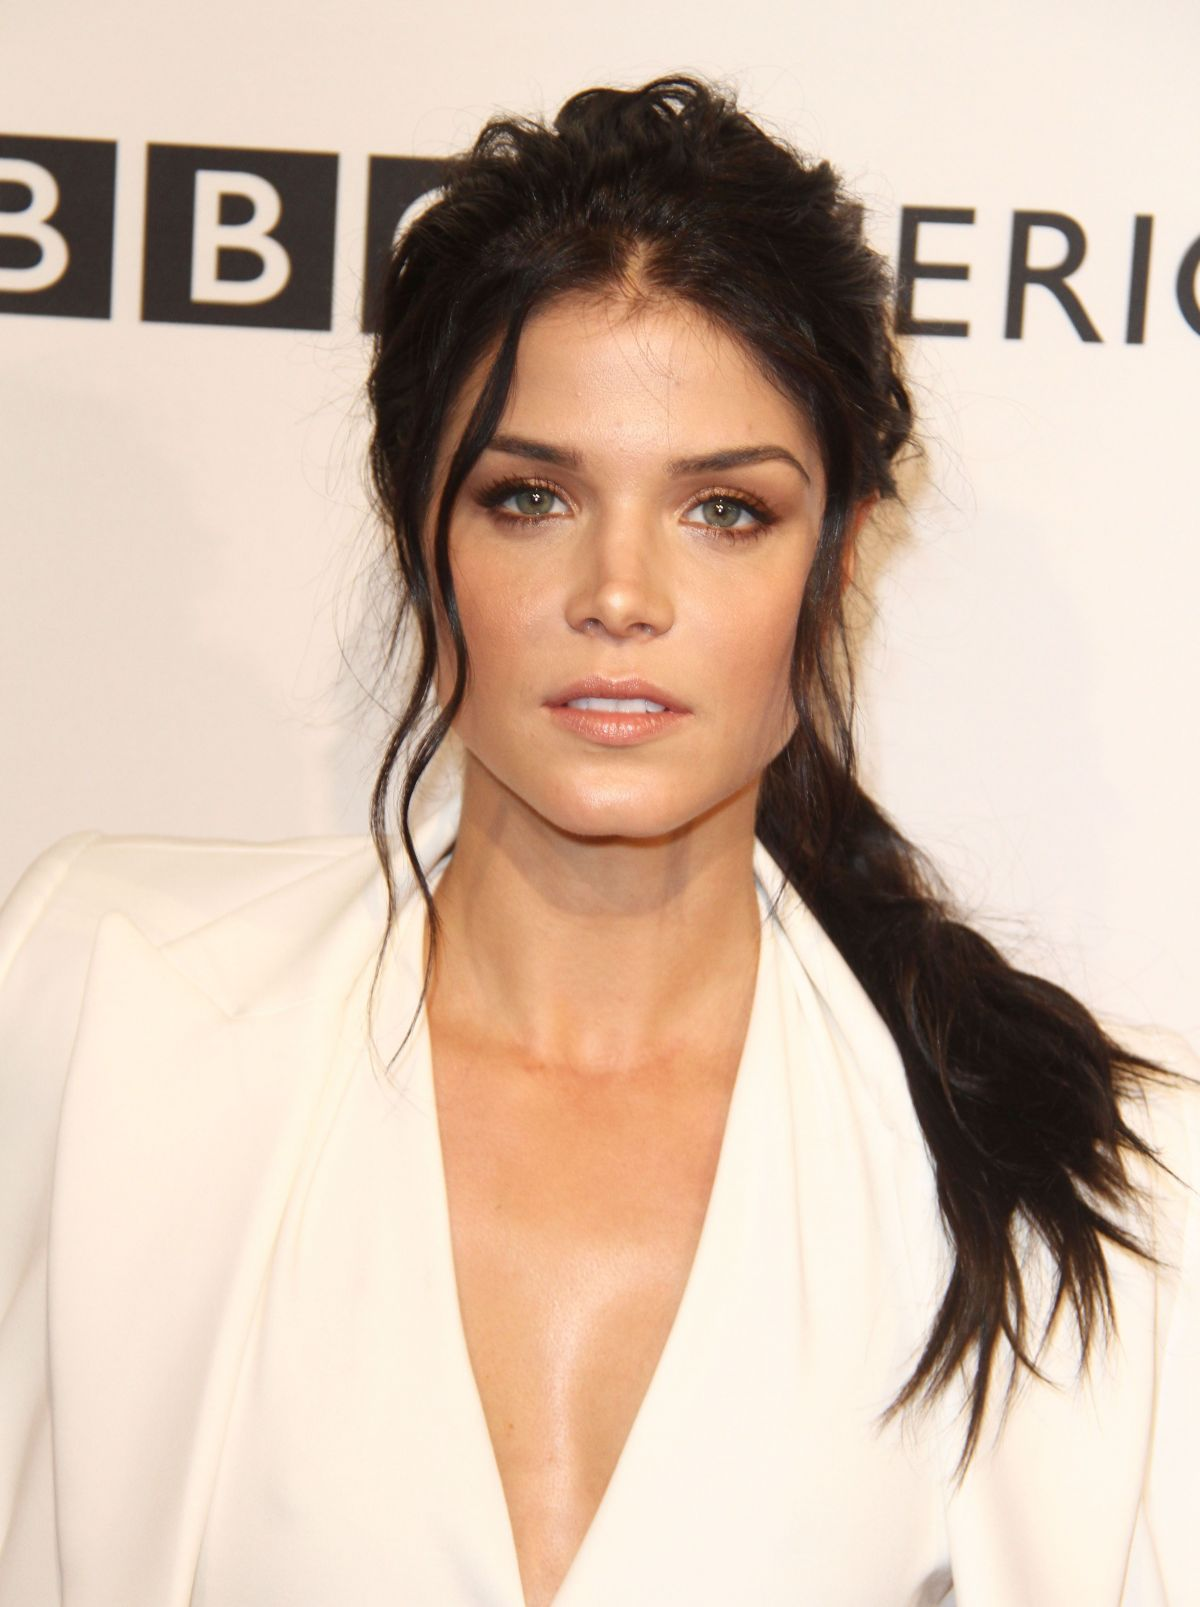 Marie Avgeropoulos naked (67 photos), Tits, Paparazzi, Instagram, butt 2019